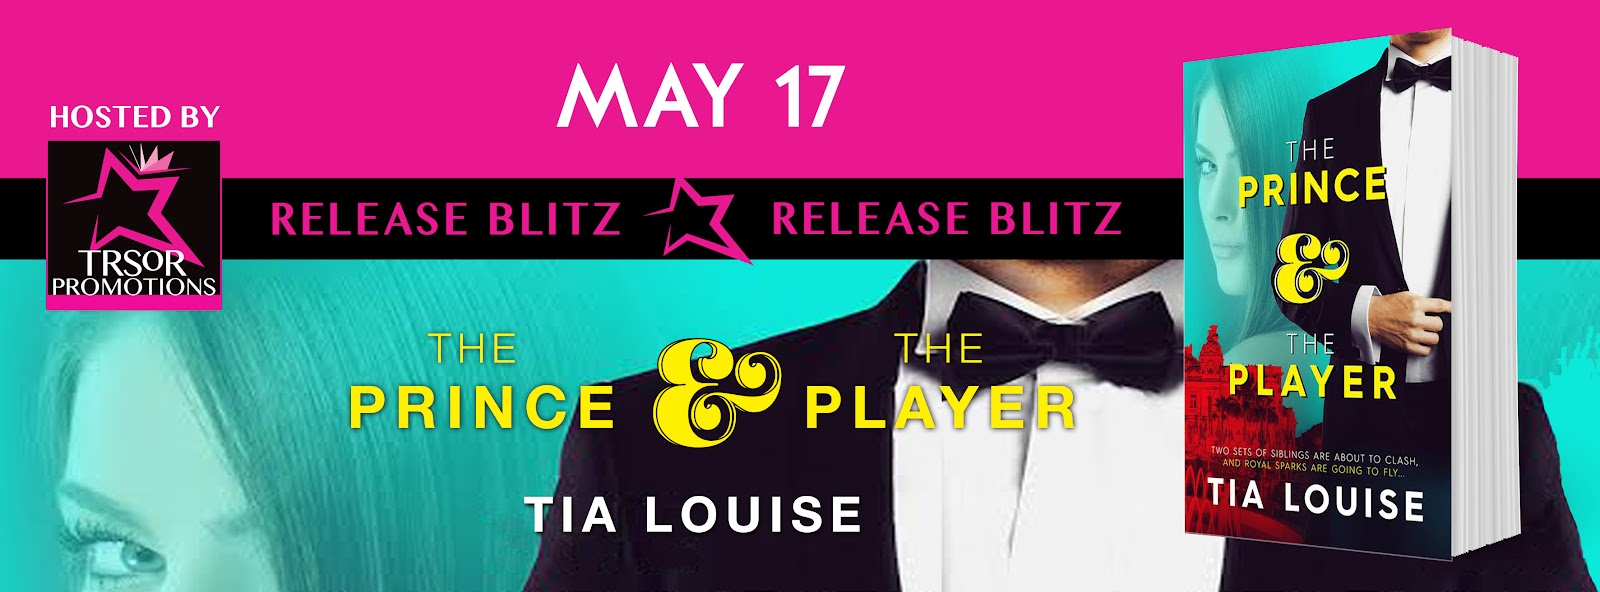 PRINCE&PLAYER_RELEASE_BLITZ.jpg